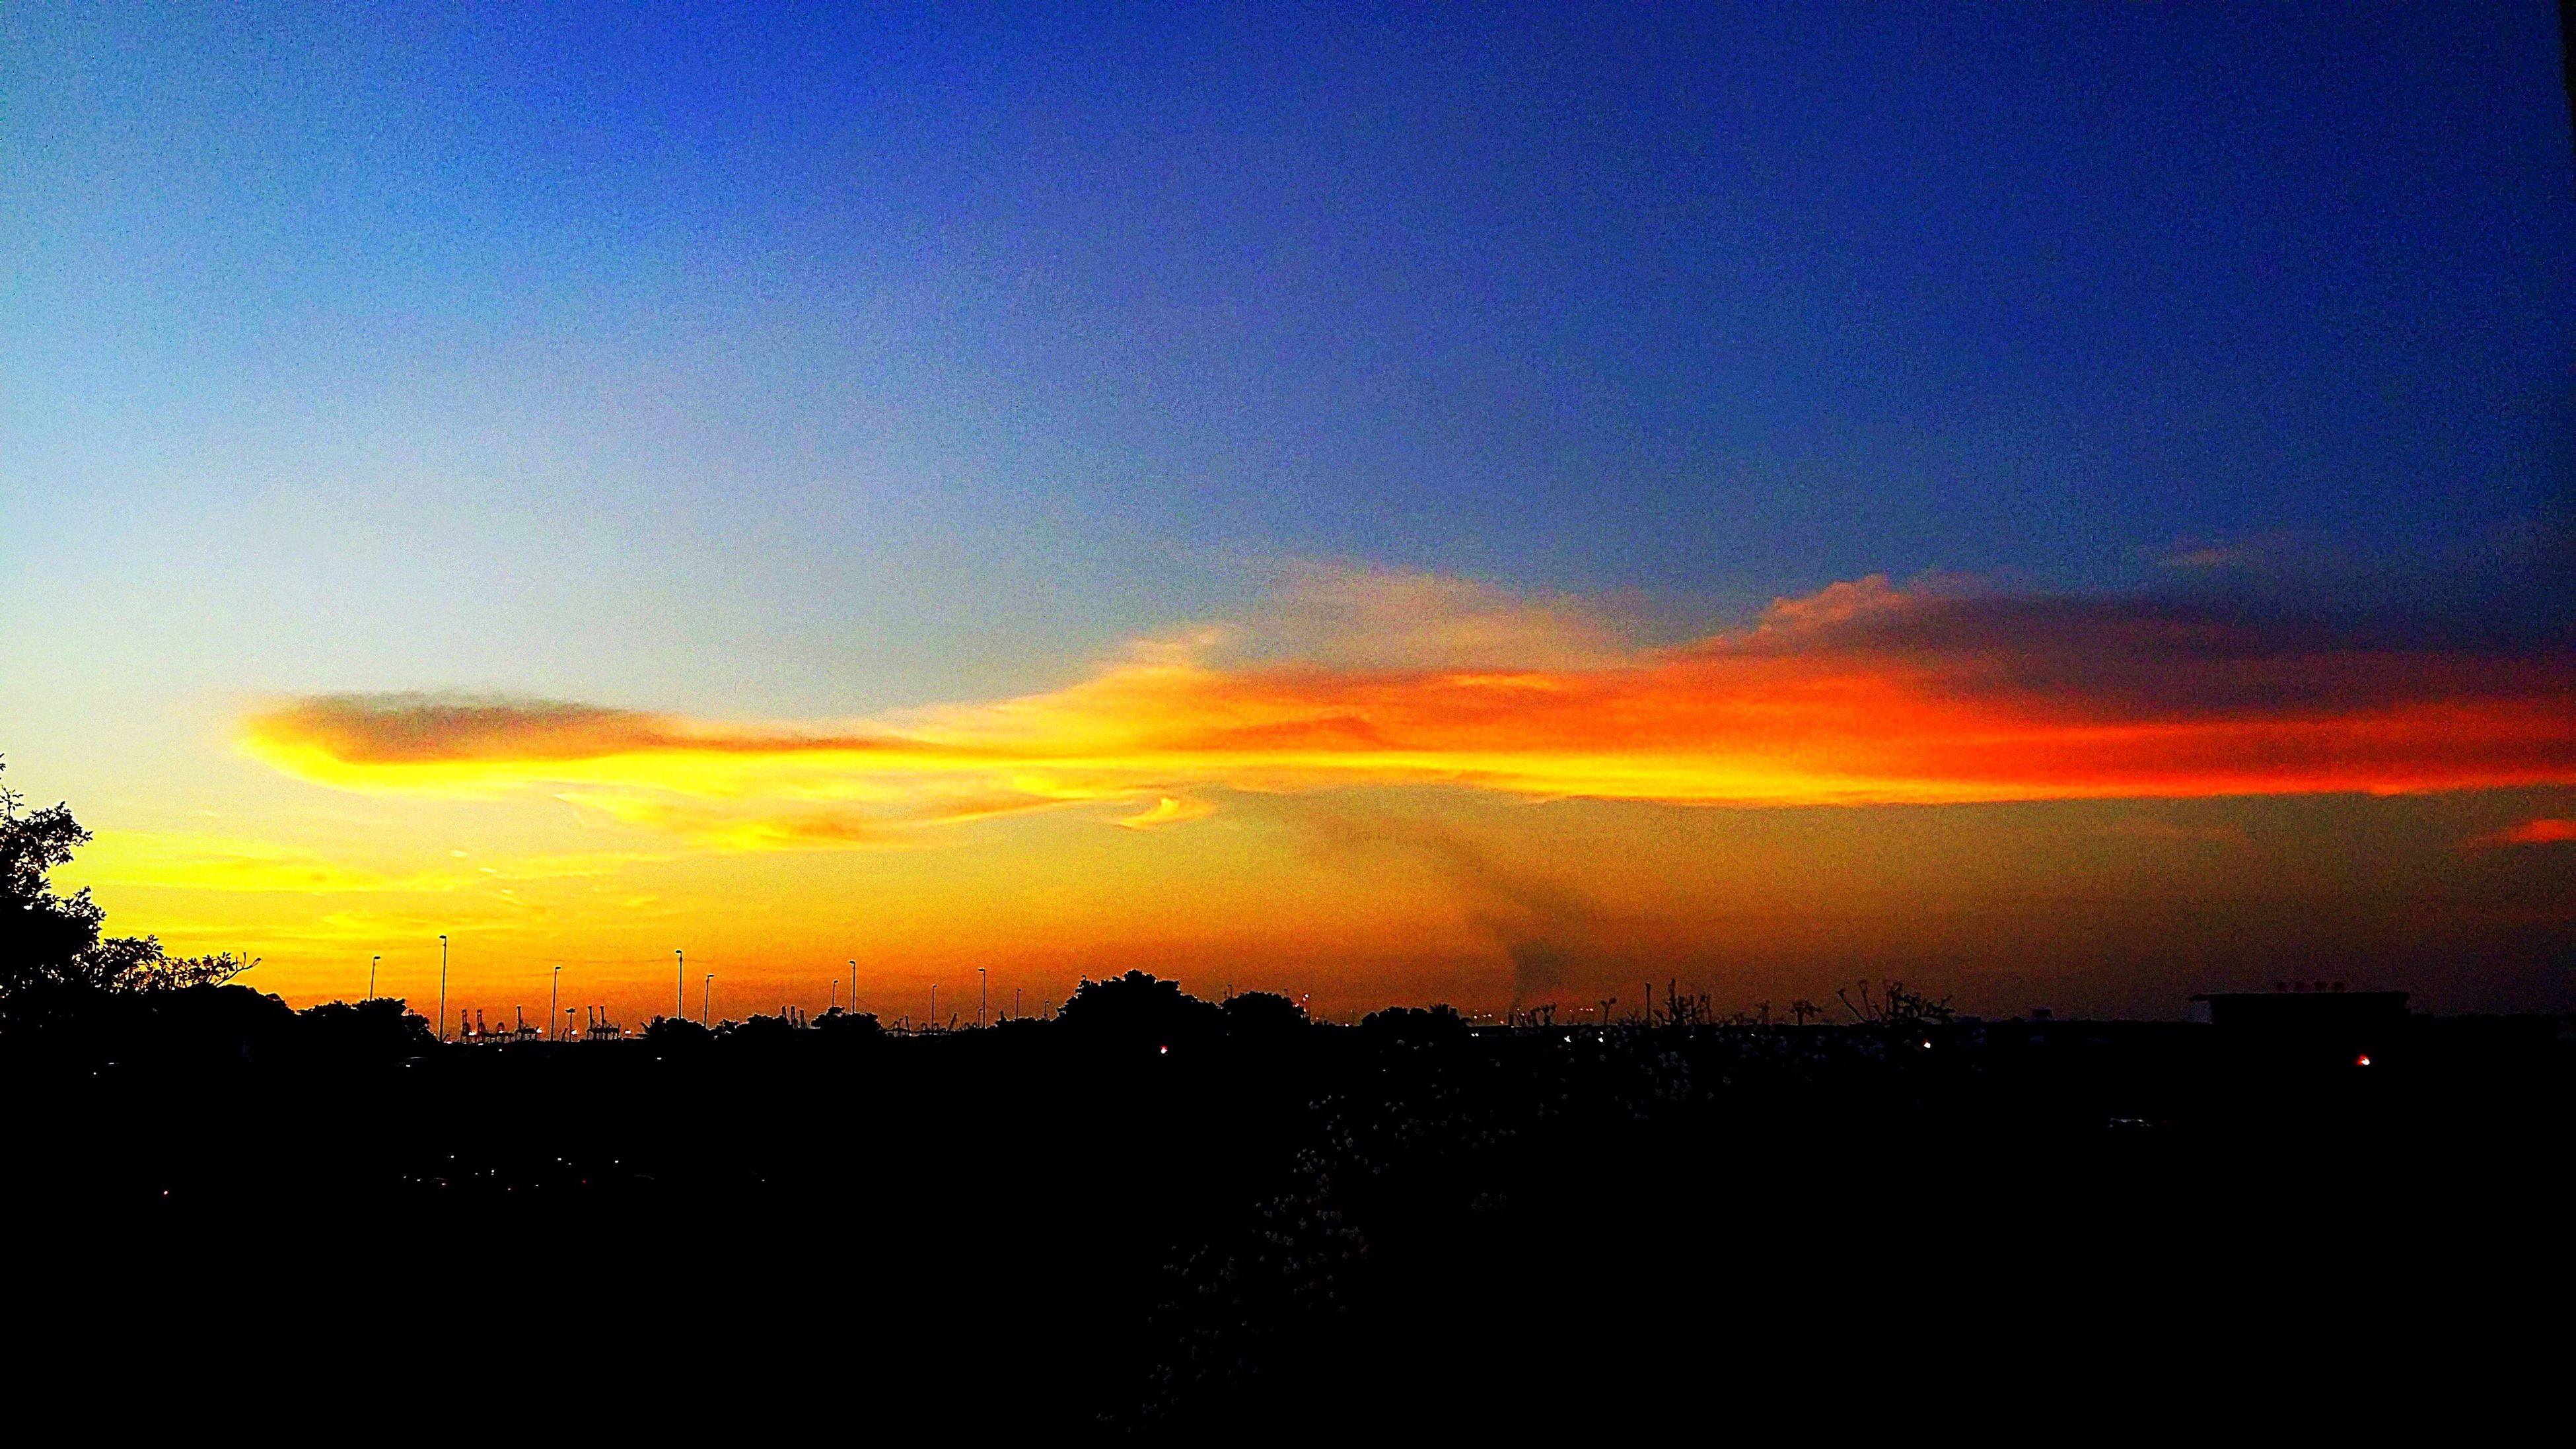 sunset, silhouette, orange color, scenics, sky, tranquil scene, beauty in nature, cloud - sky, tranquility, nature, calm, outline, cloud, blue, outdoors, majestic, moody sky, no people, dramatic sky, cloudy, atmospheric mood